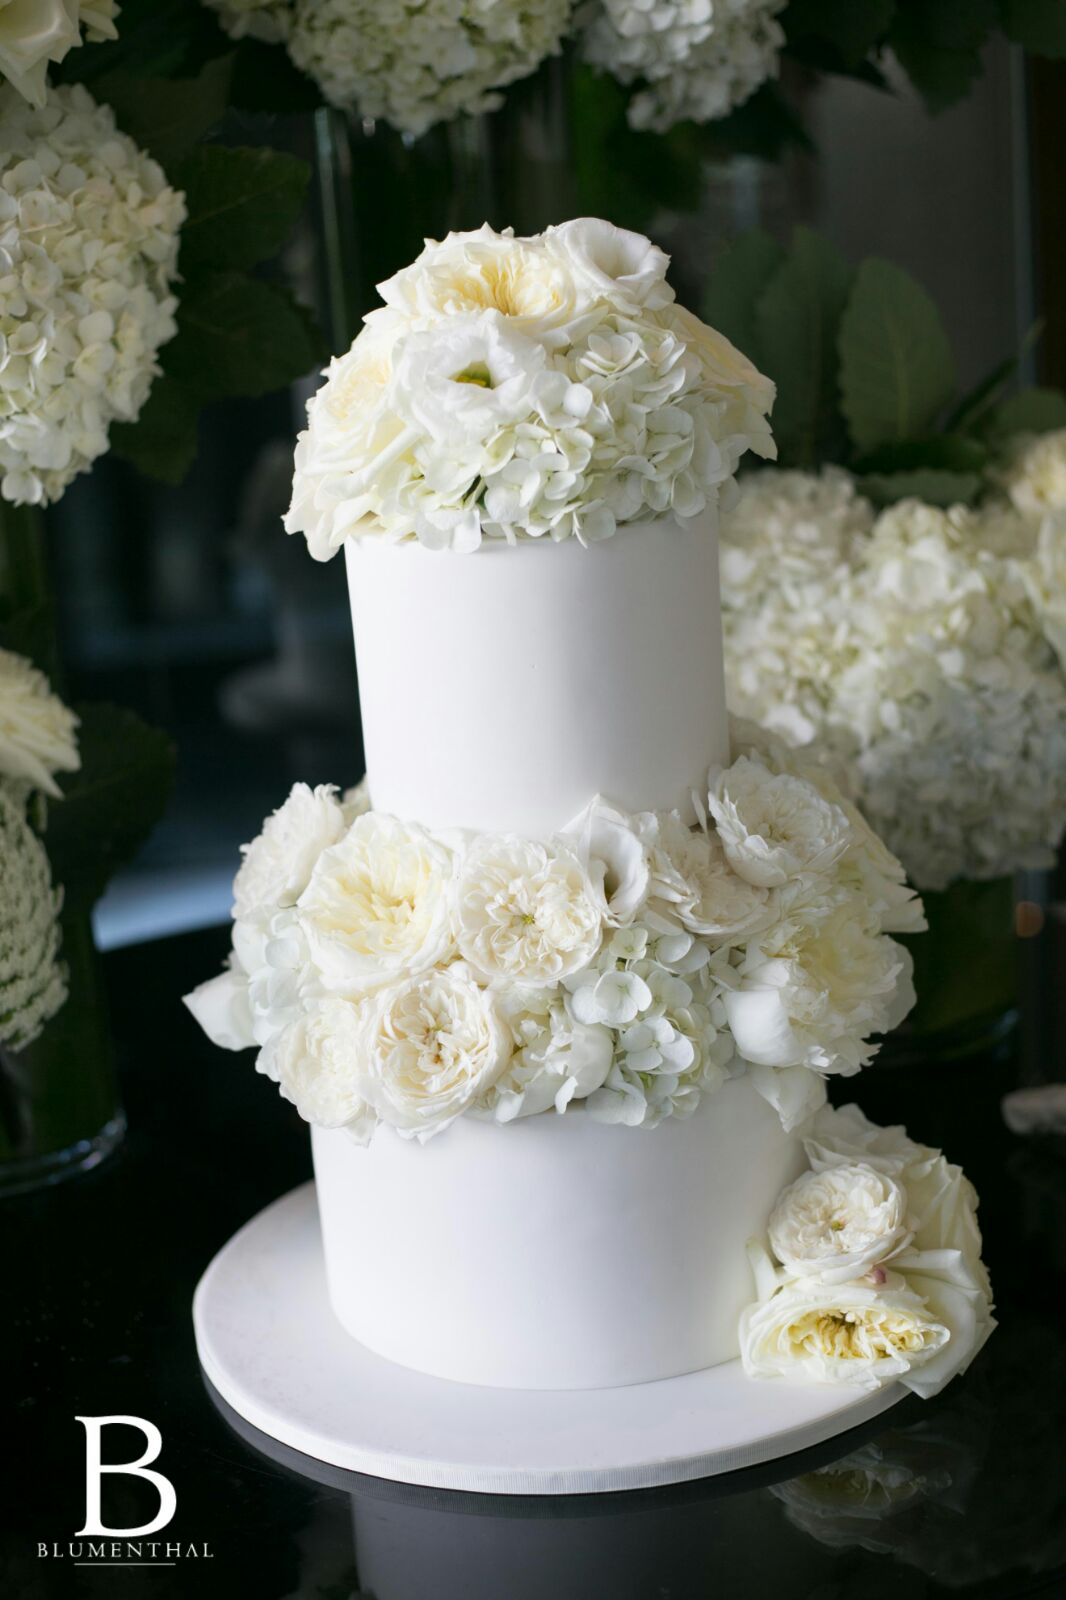 Wedding Cake Decorated with White Flowers